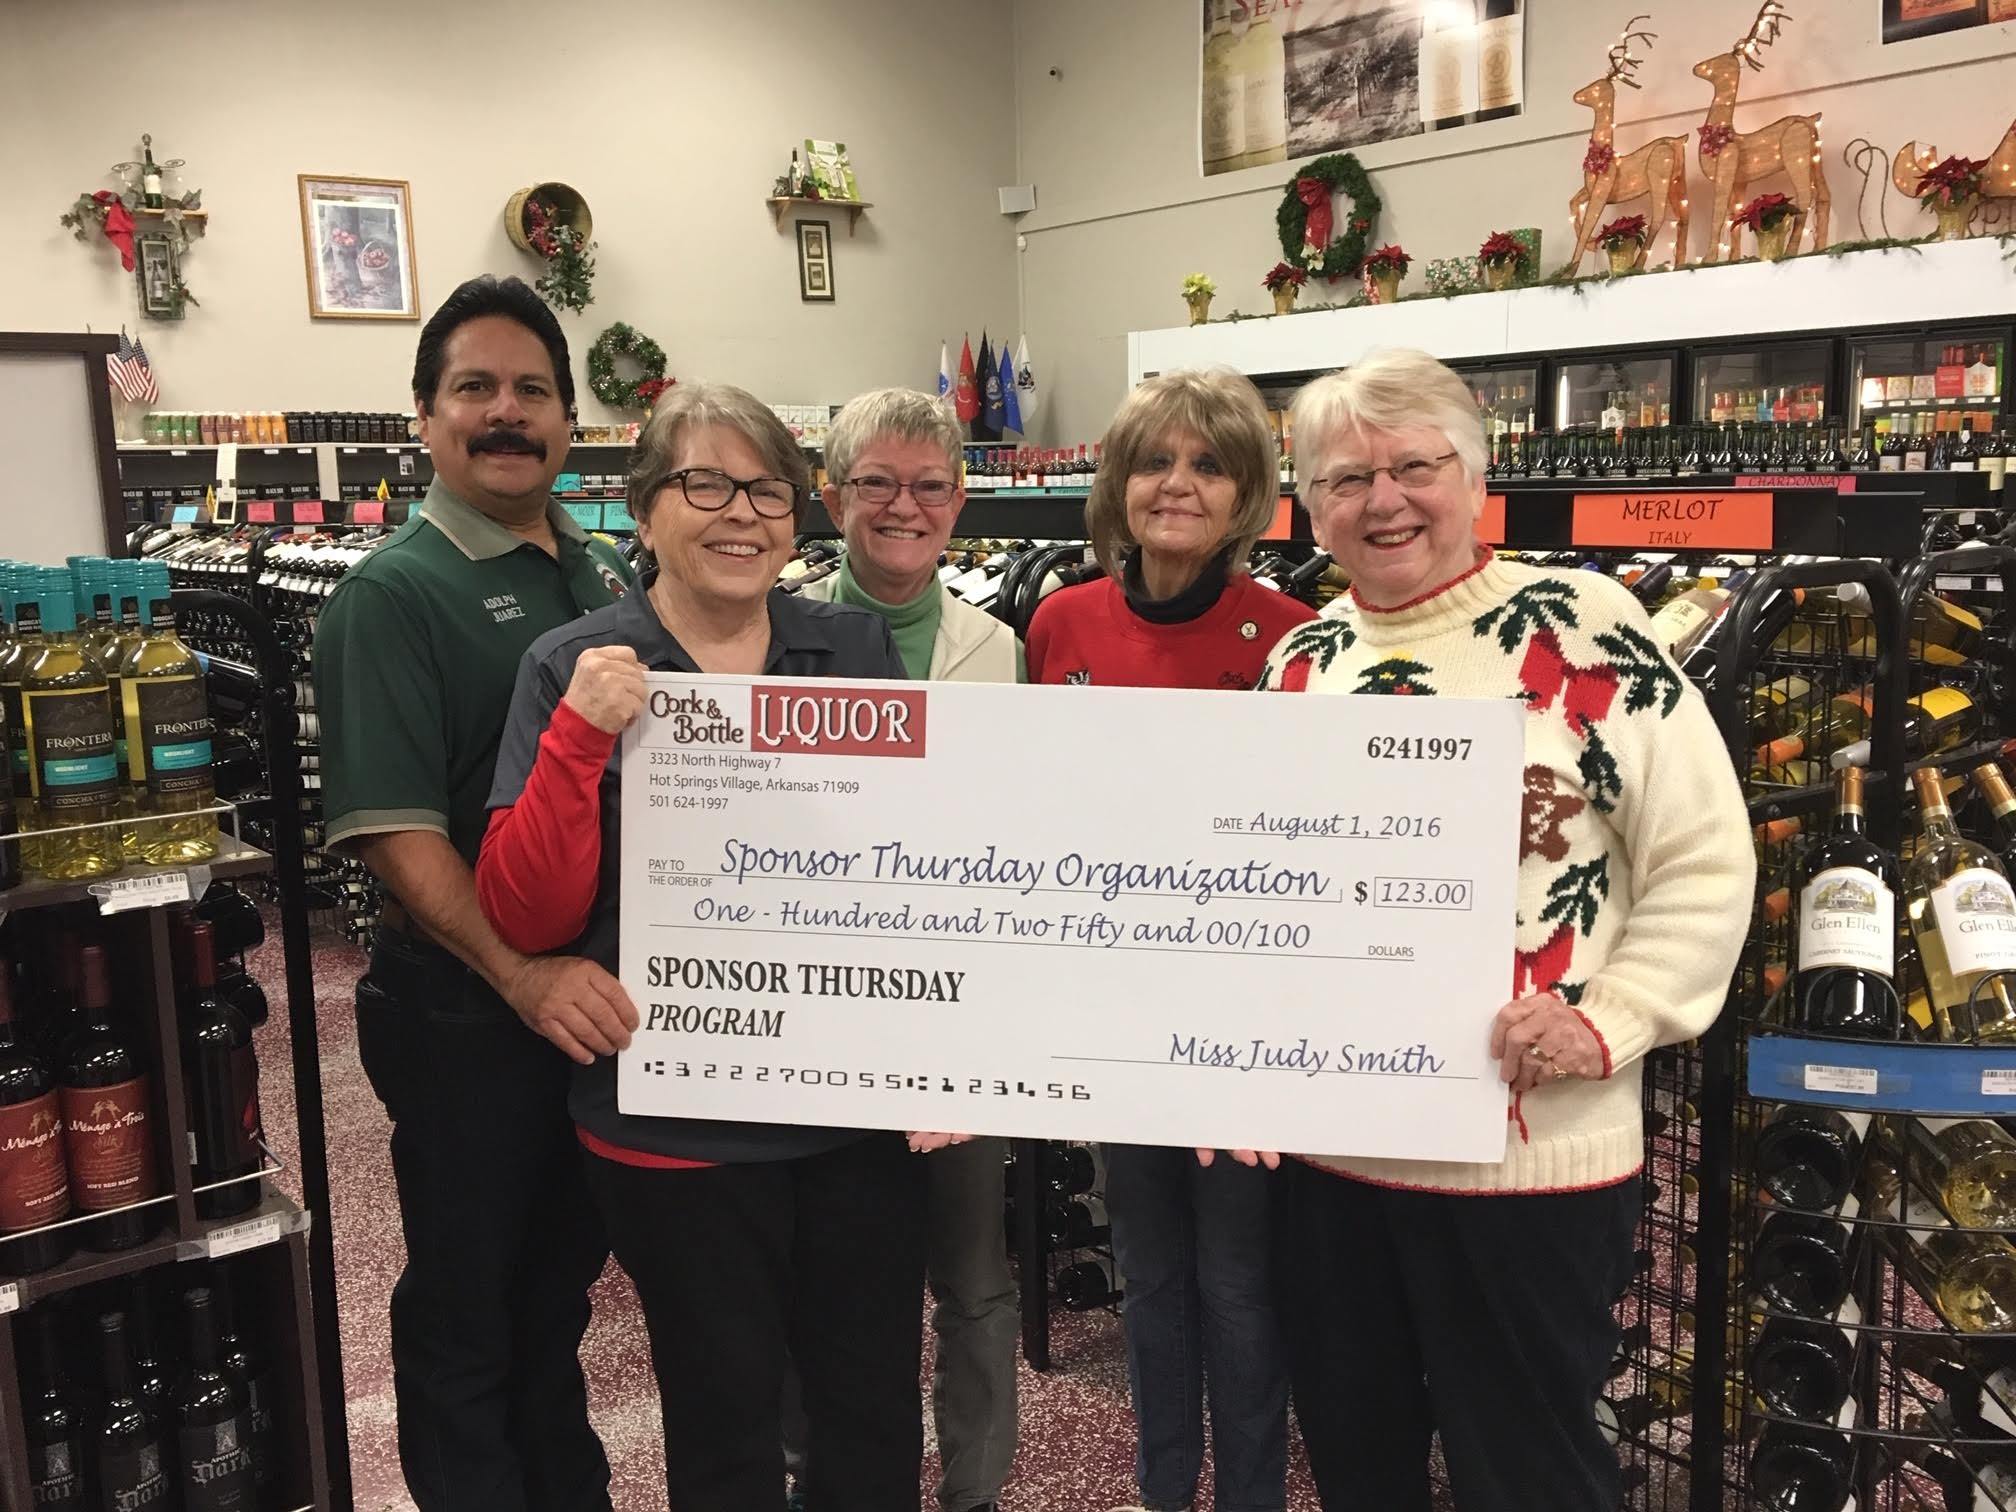 Cork and Bottle supports local non-profits. In this case they gave HSV Audubon $146.00, Left to right: Membership Chair Adolph Juarez, President Norma Wall, VP Karen Geiger, Judy Smith of Cork & Bottle, and Ecology Camp Chair Teri LaBove.